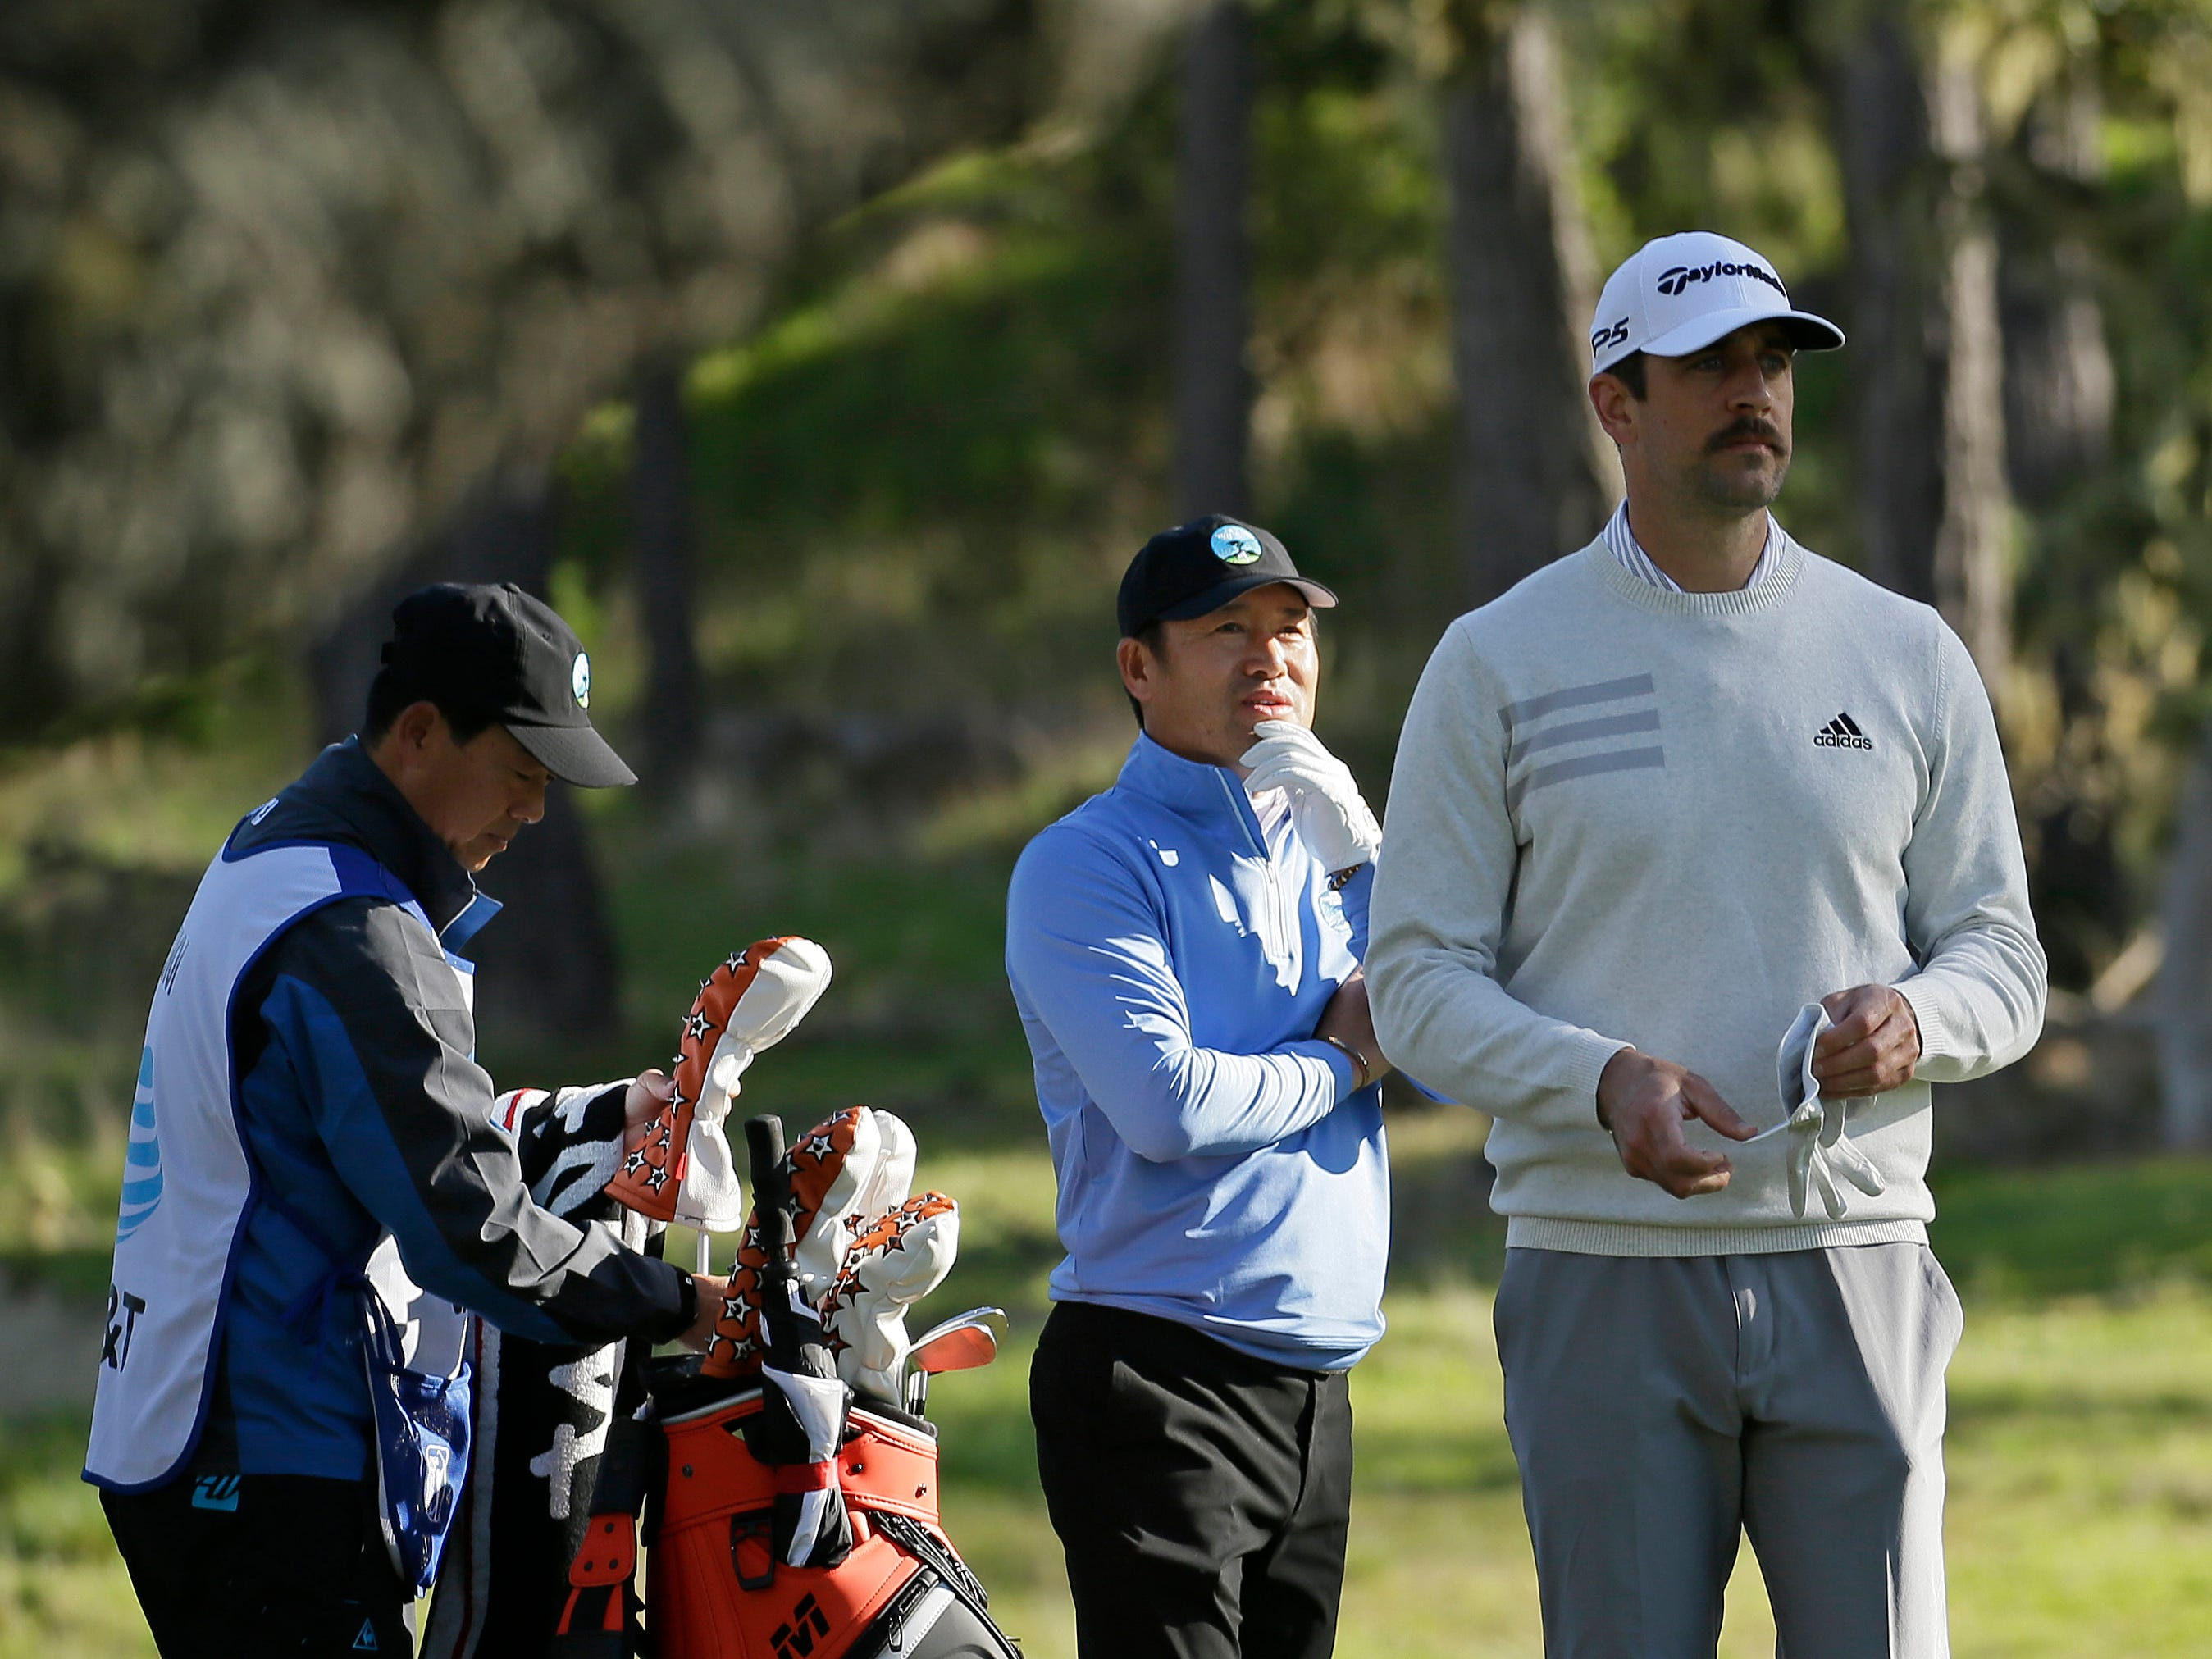 Packers QB Aaron Rodgers and pro golfer, viral sensation Ho-Sung Choi wait to hit from the fourth tee of the Monterey Peninsula Country Club Shore Course during the first round of the AT&T Pebble Beach National Pro-Am.